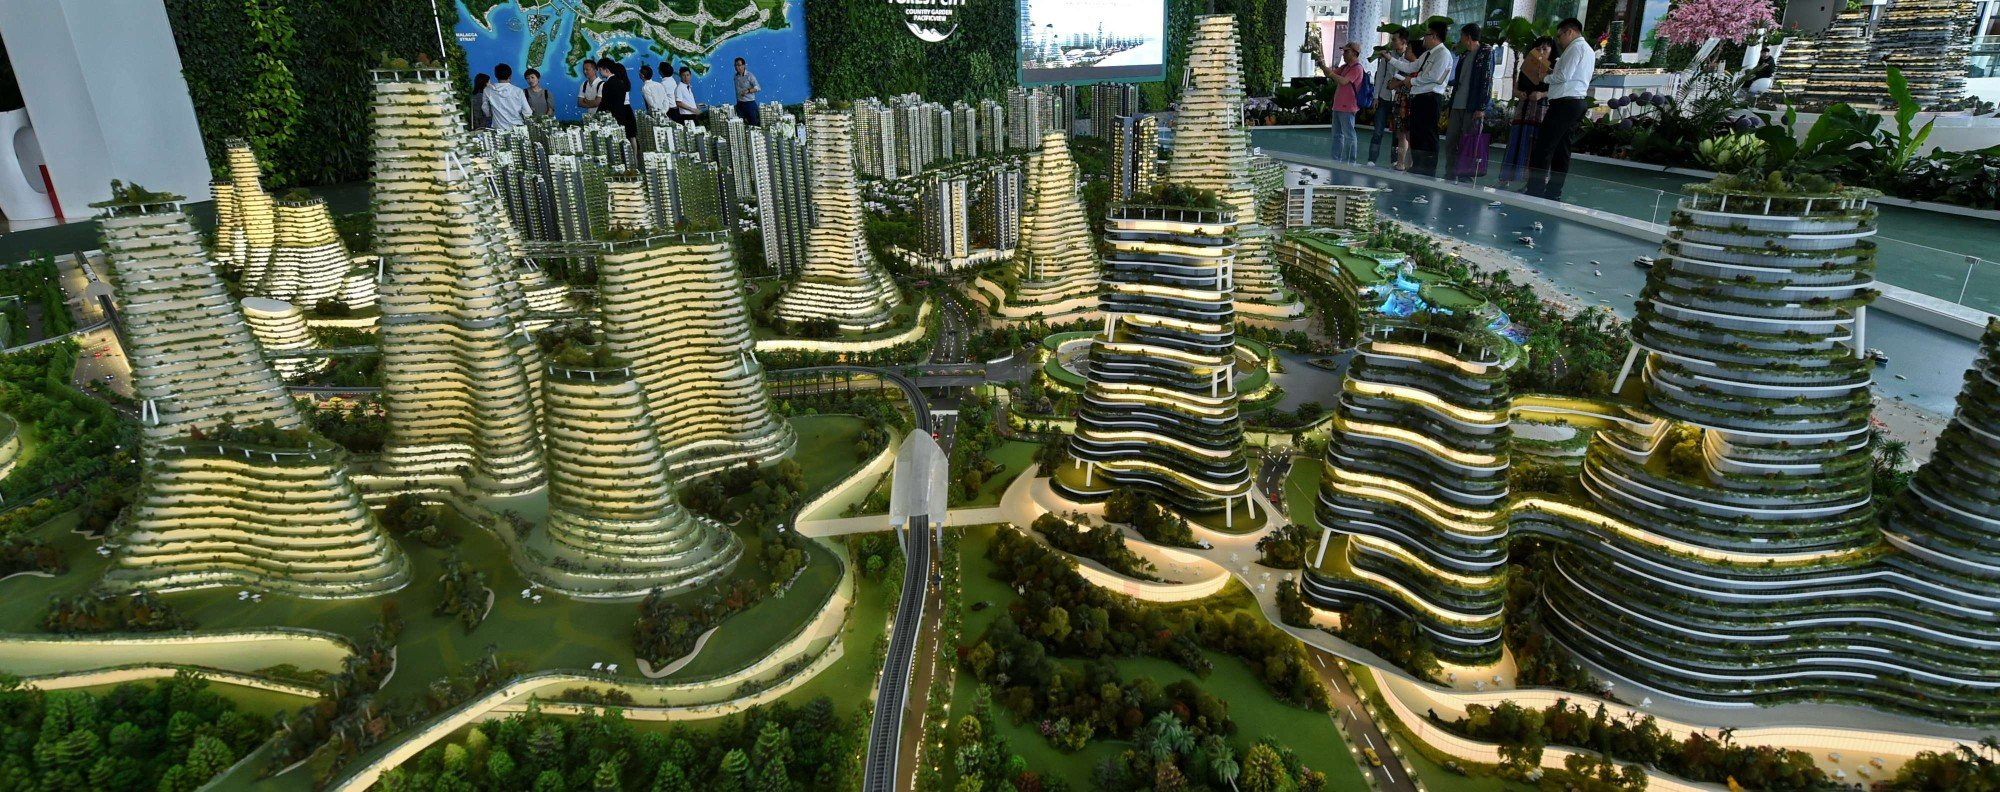 A scale model of the Forest City development criticised by Mahathir as creating a 'foreign enclave'. Photo: AFP